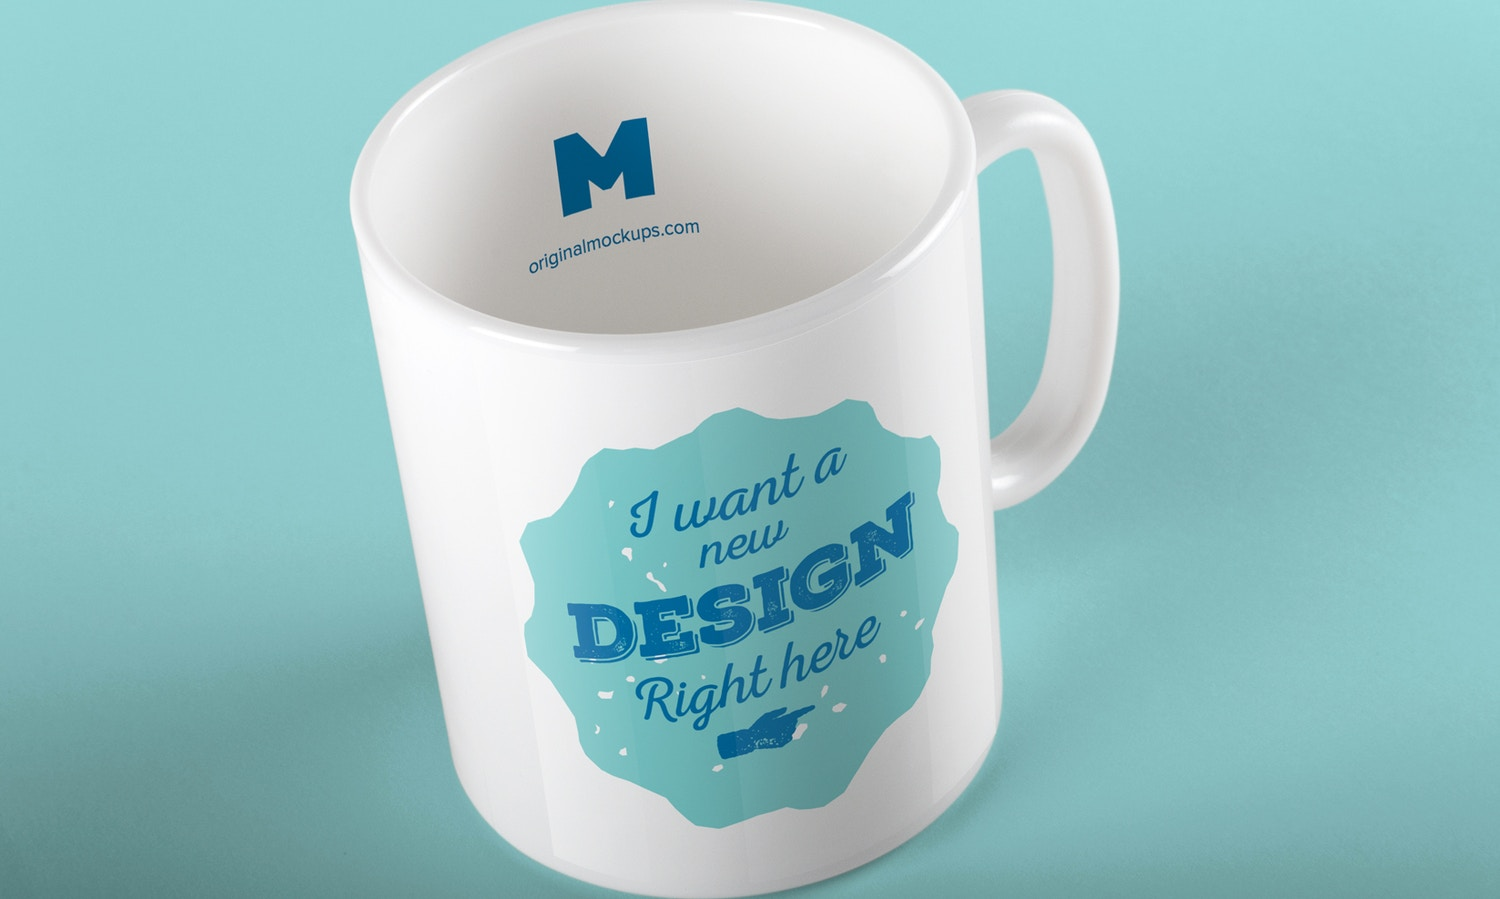 Mug Mockup 01 by Original Mockups on Original Mockups